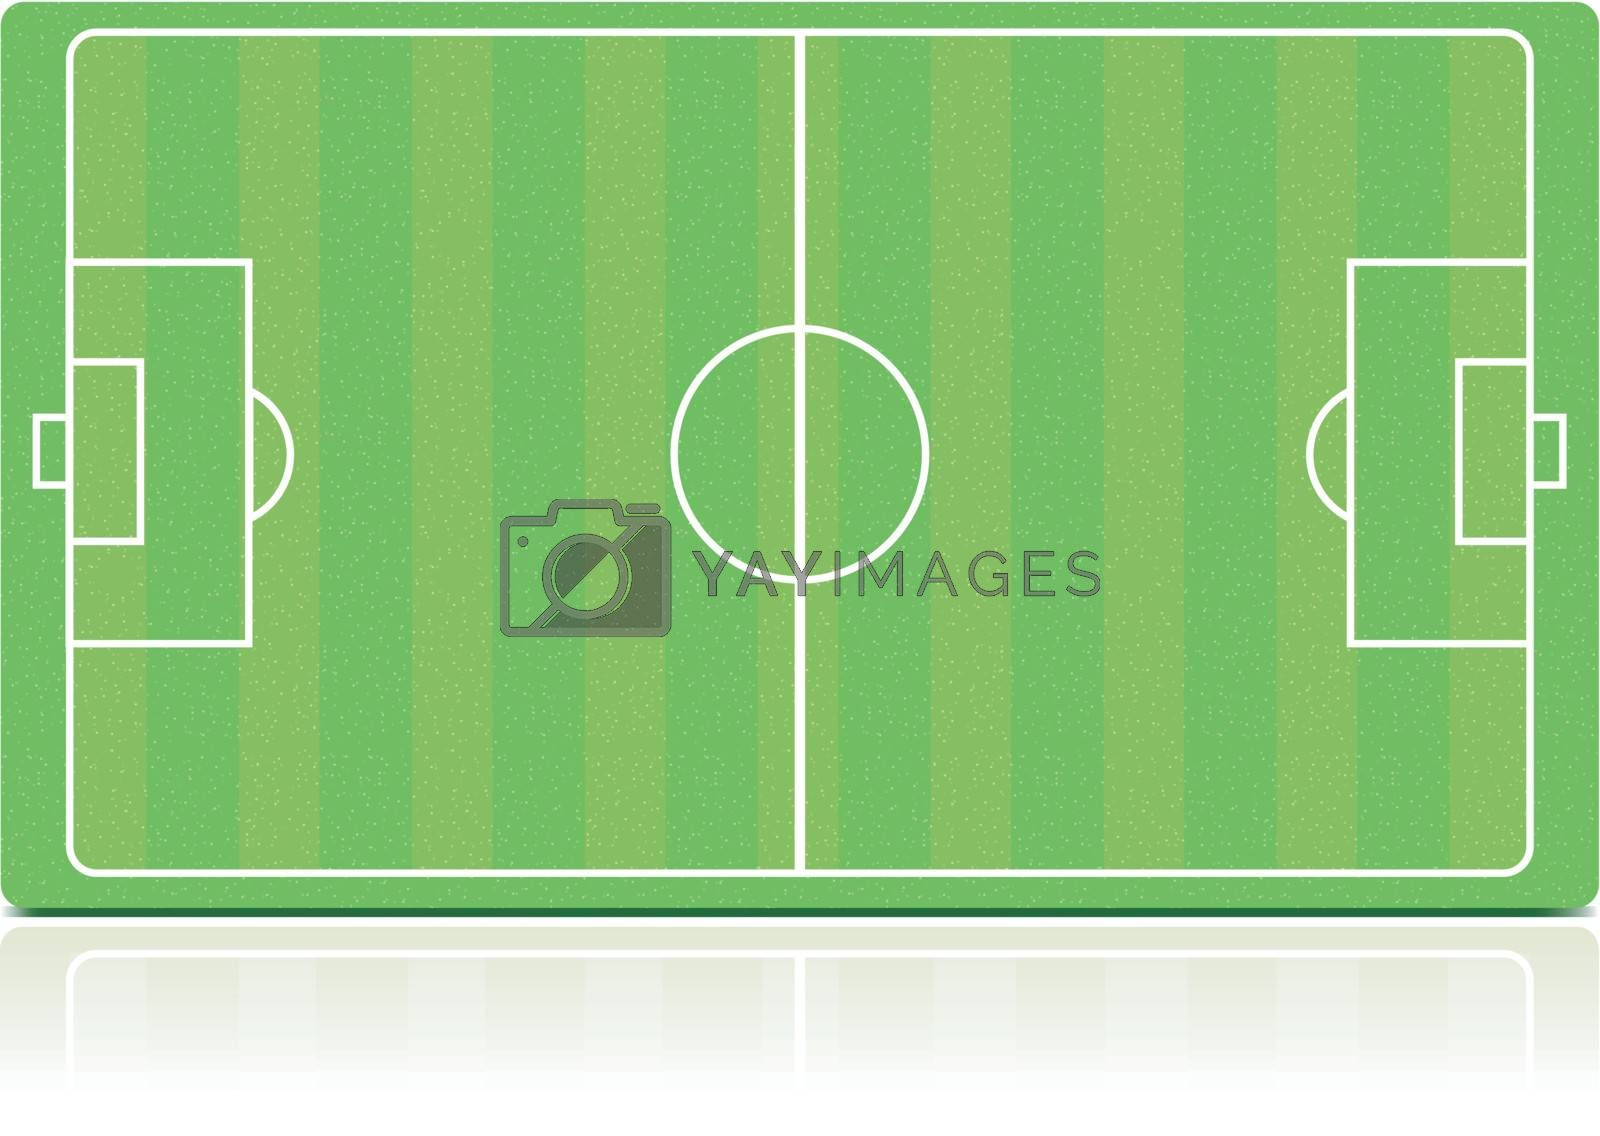 Soccer field with grass (noise) texture isolated on white background